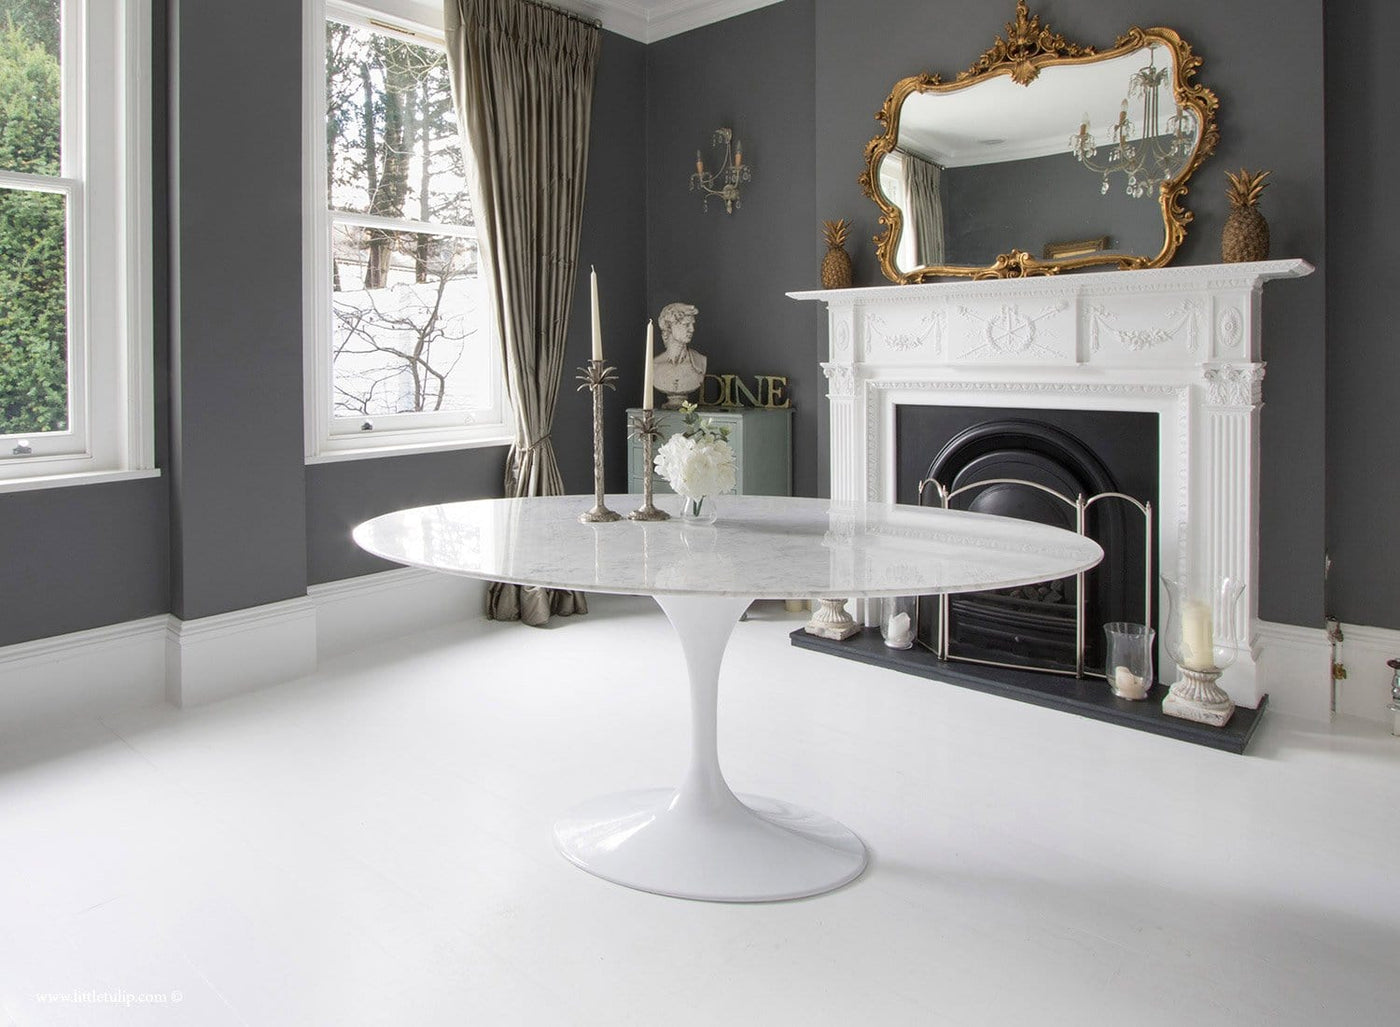 170cm X 110cm Oval White Carrara Marble Tulip Table Designed By Ee The Little Tulip Shop